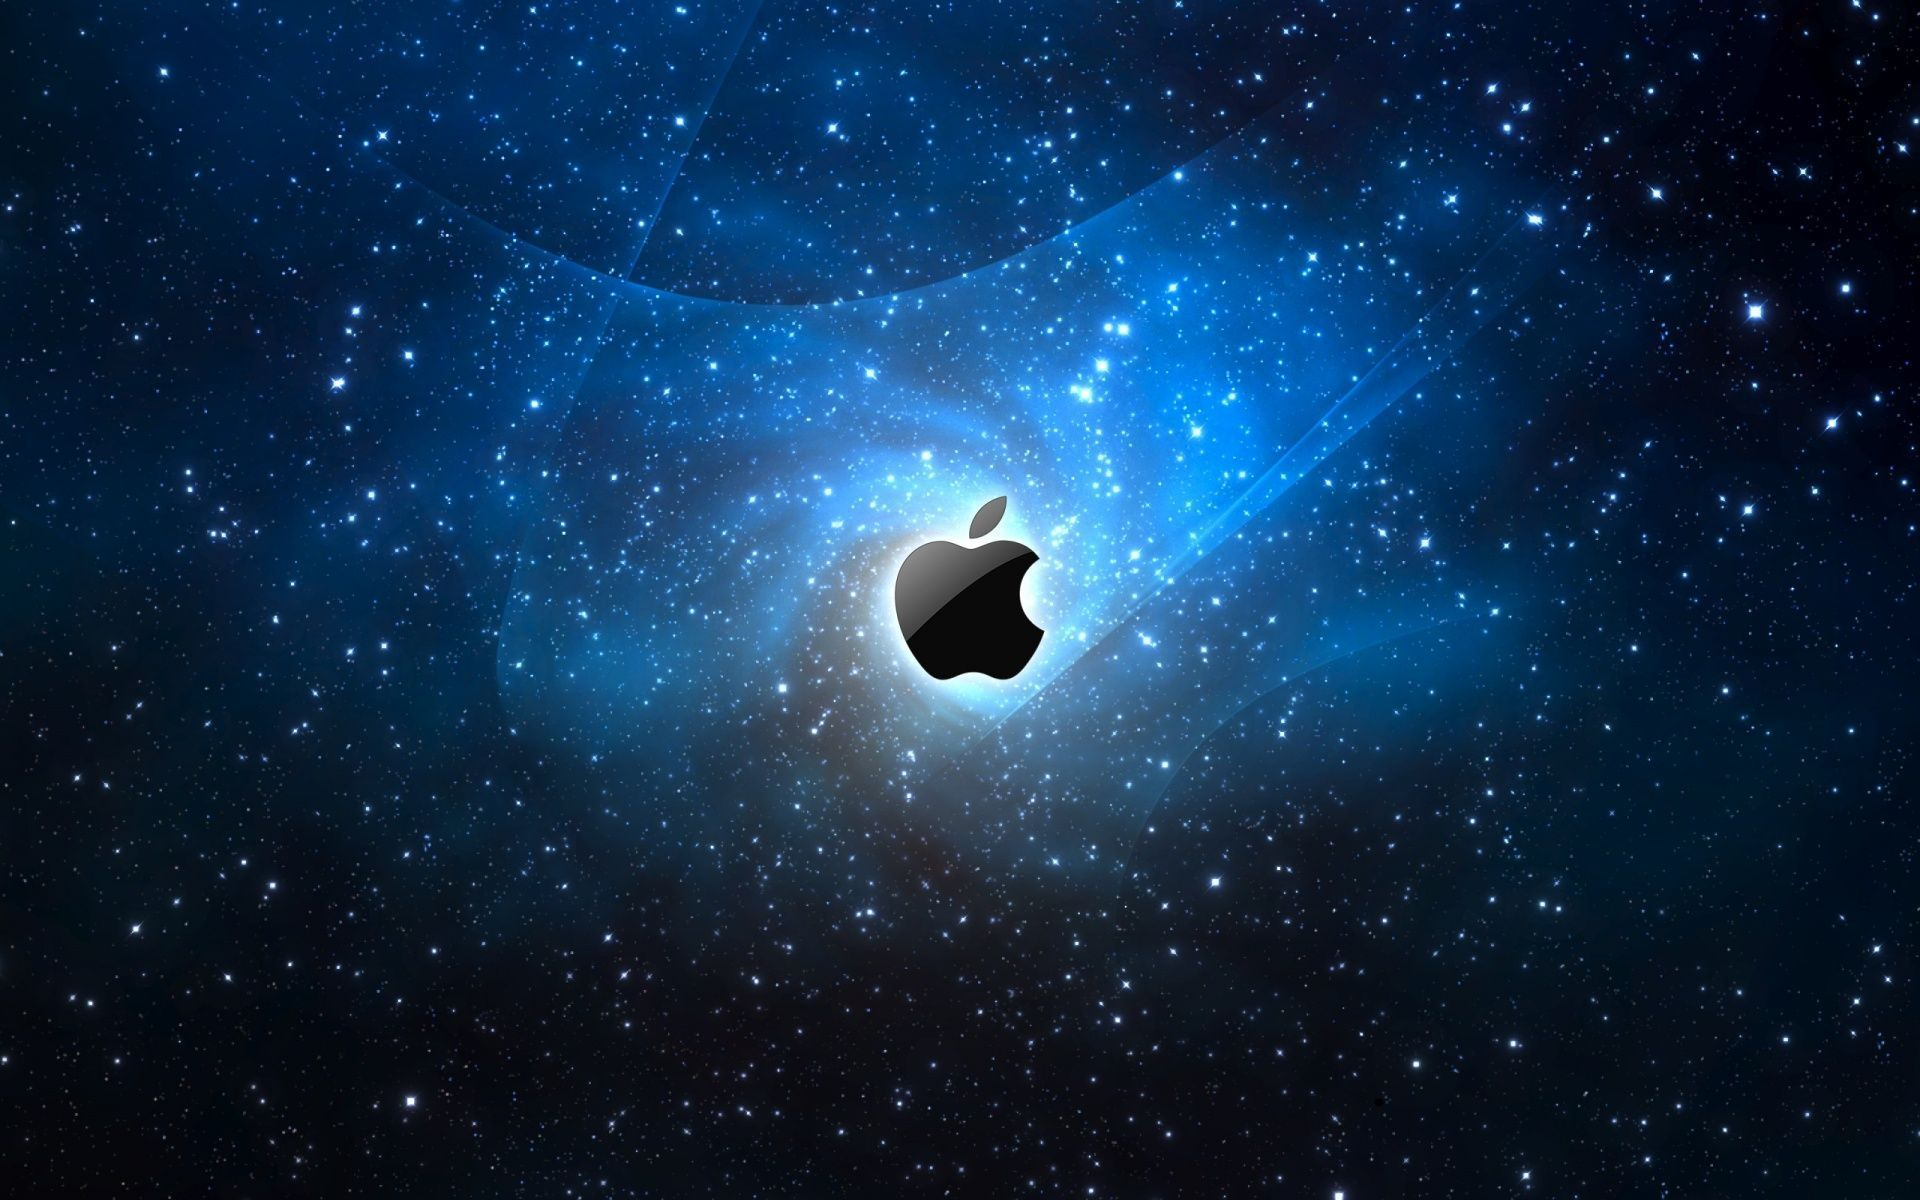 apple logo hd wallpapers - wallpaper cave | wallpaper | pinterest